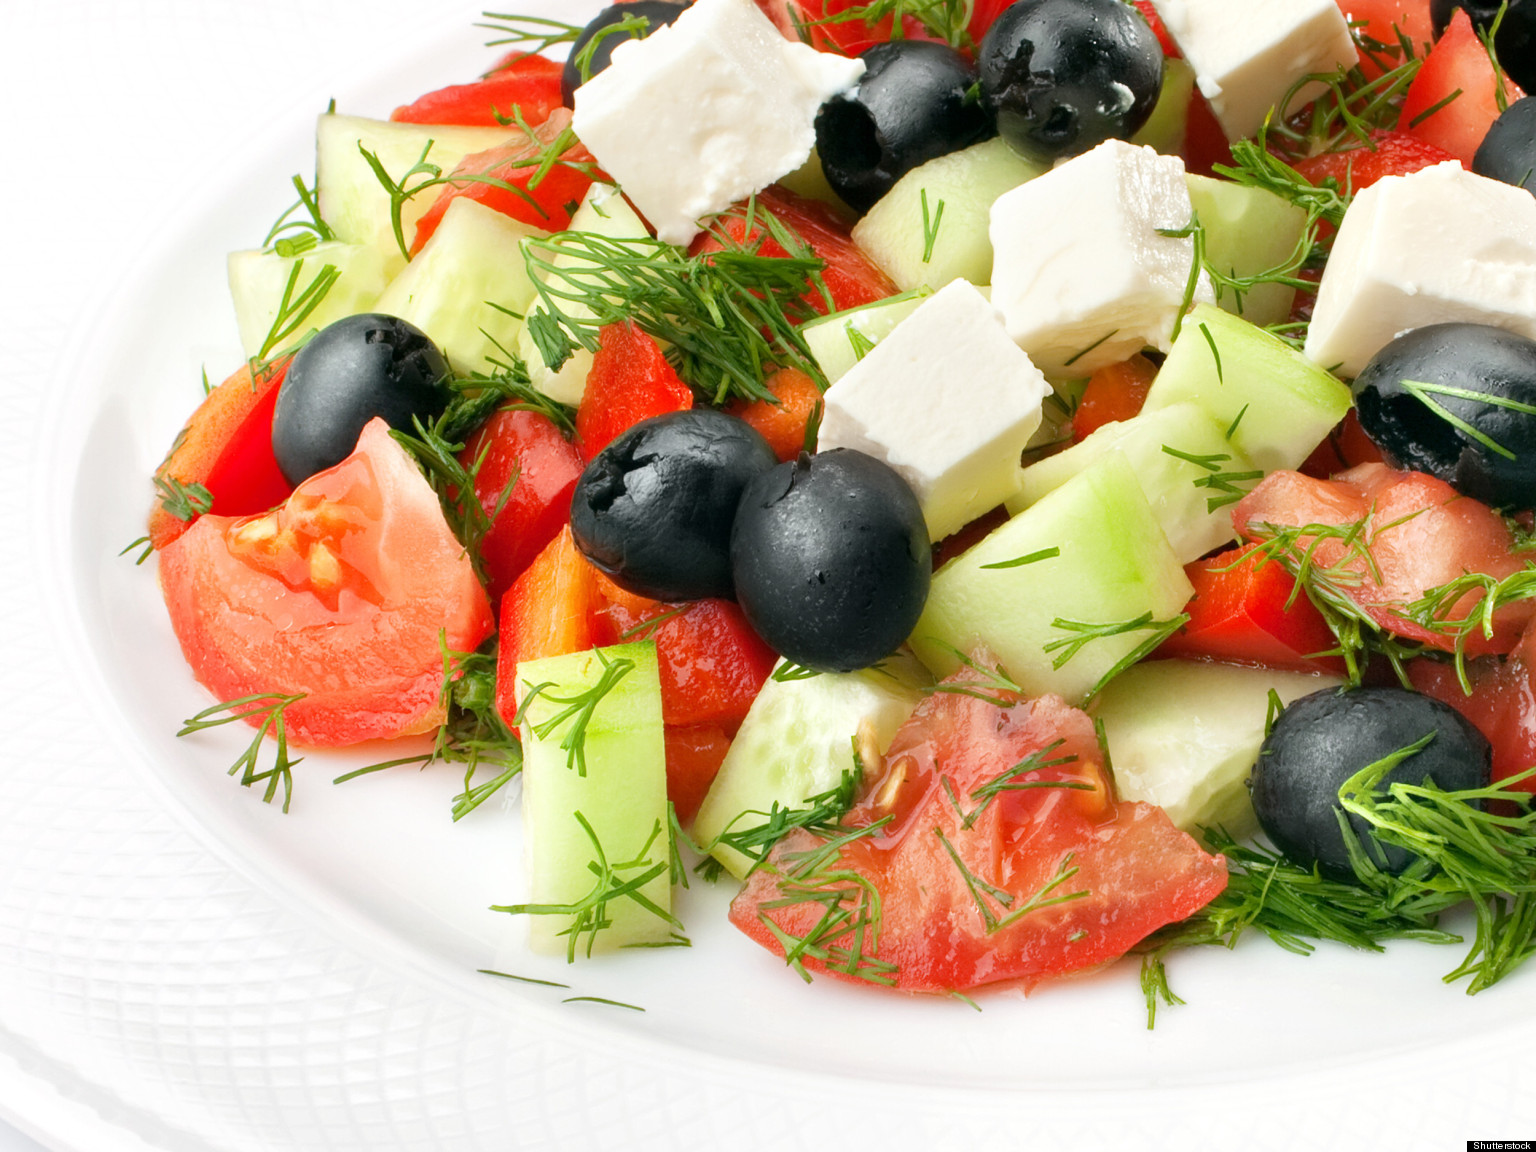 Mediterranean Diet Lowers Cholesterol Levels Even When No